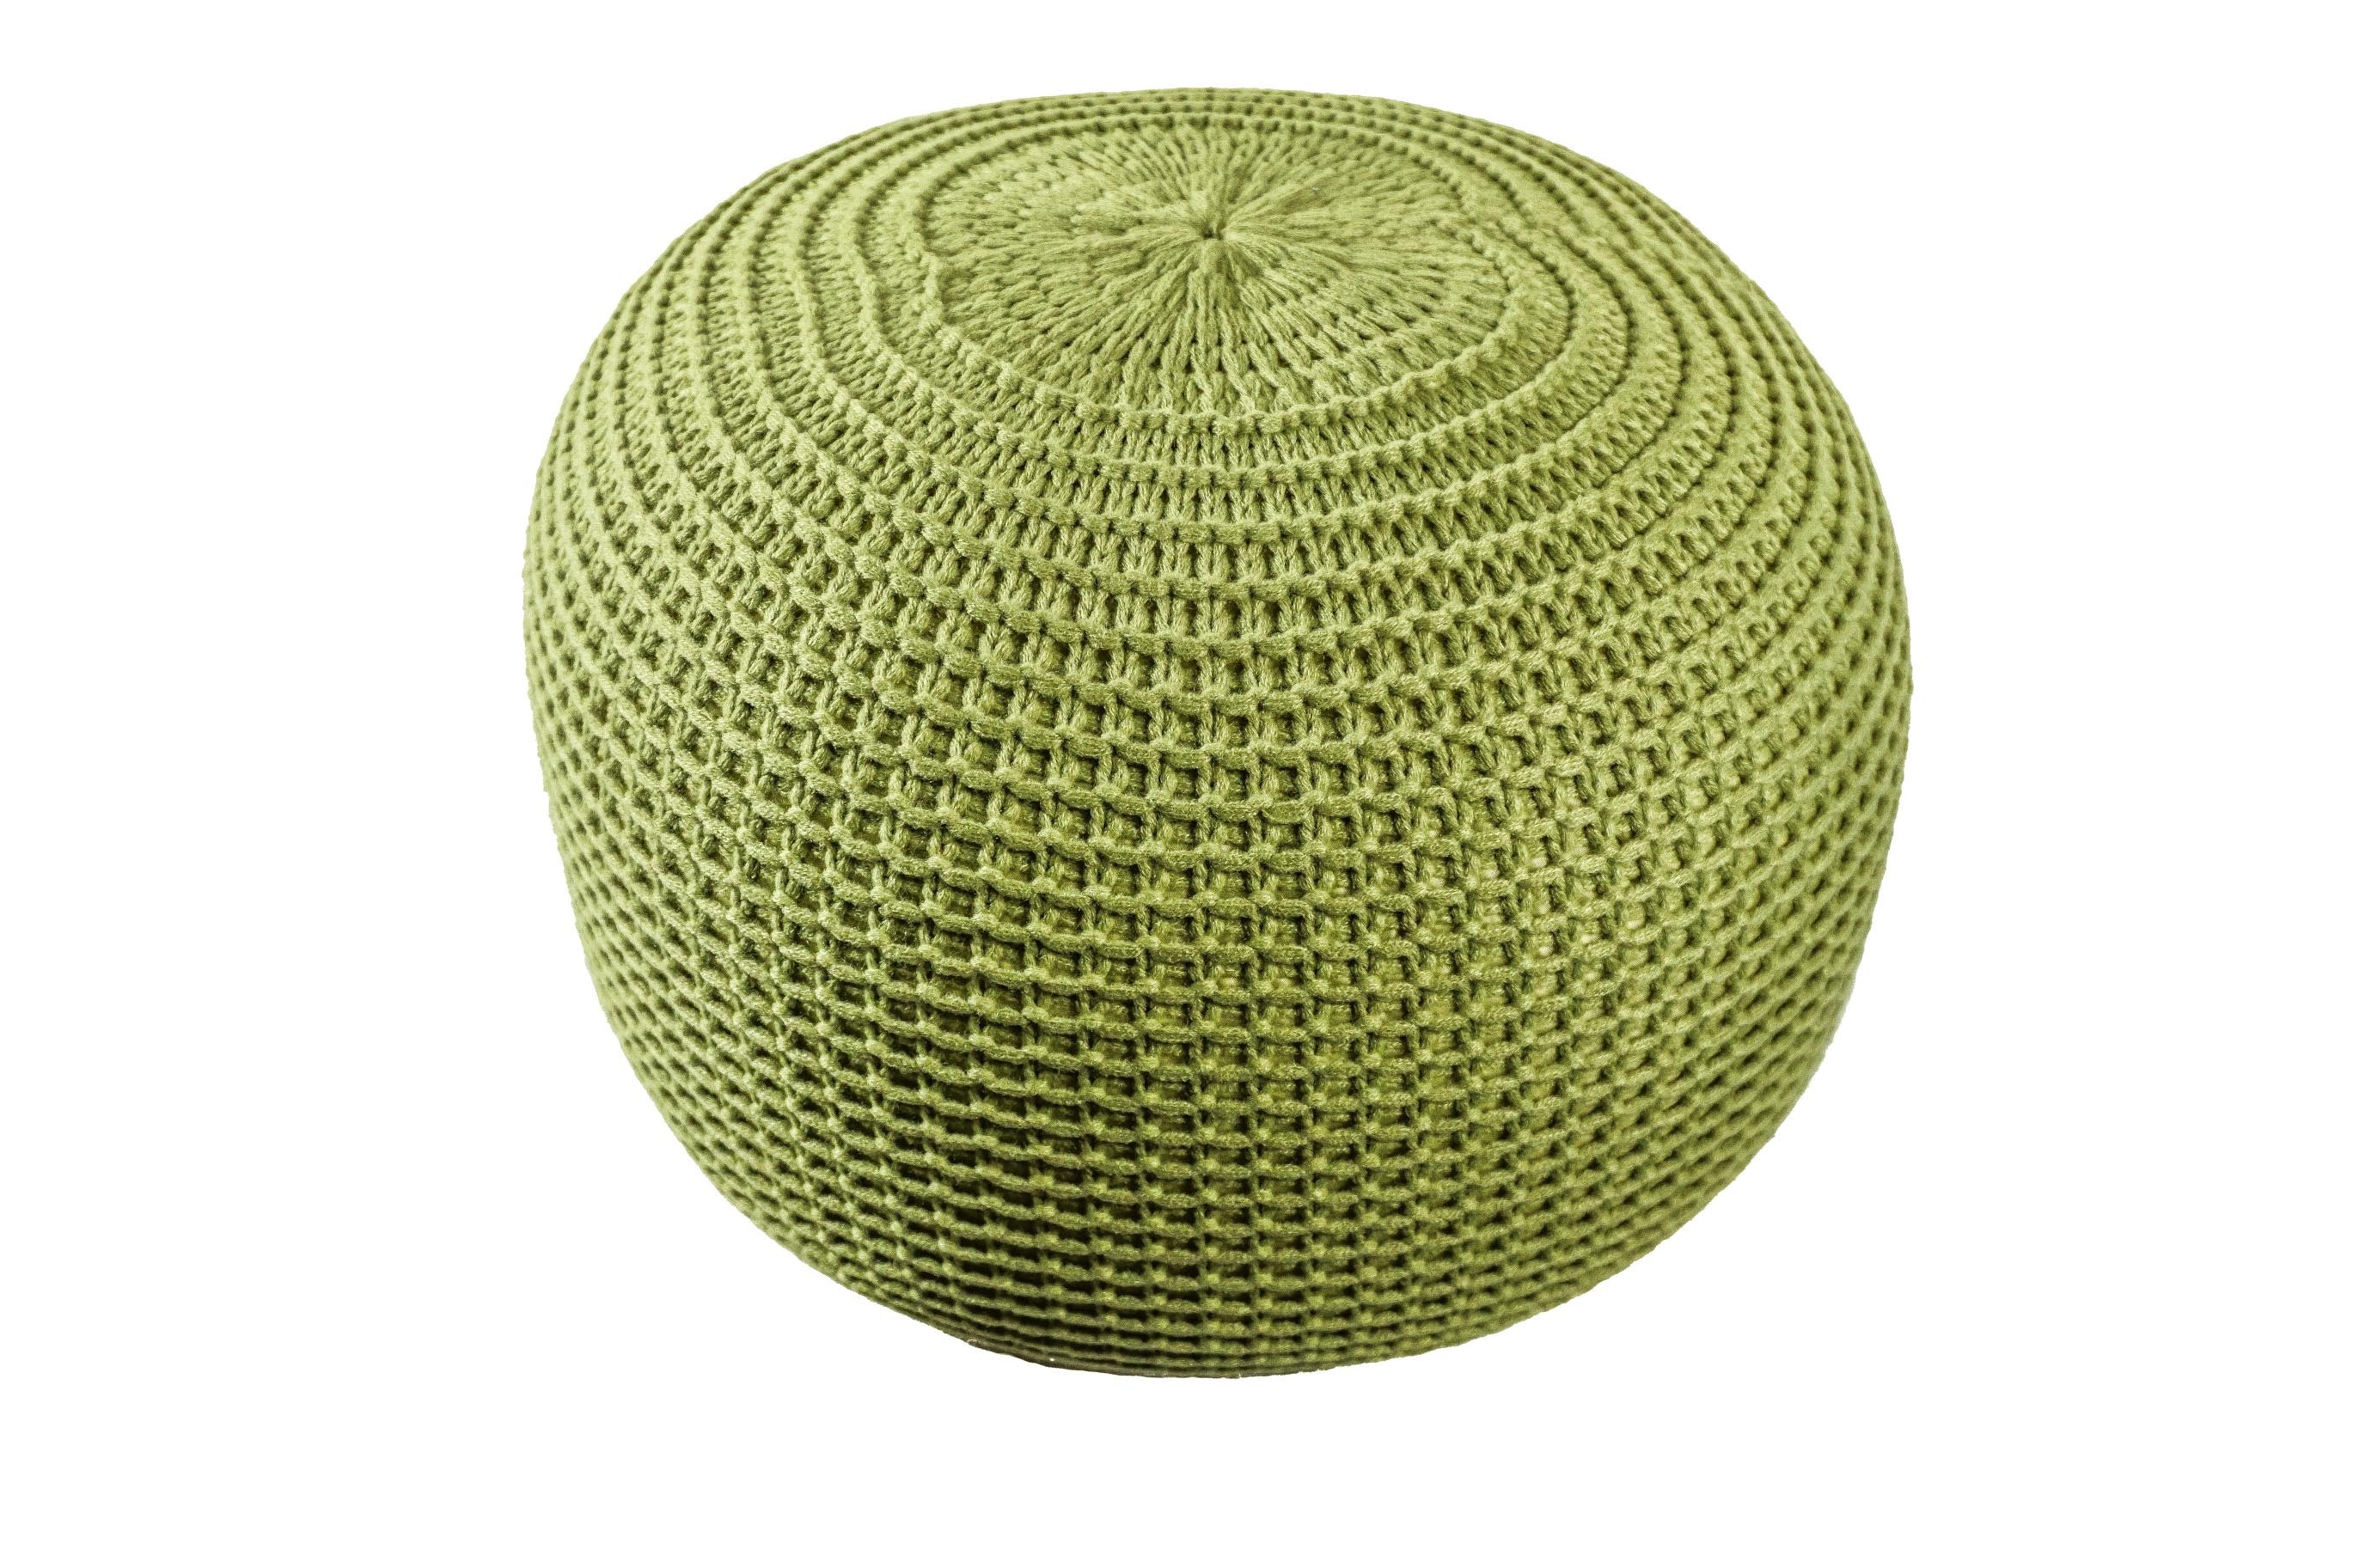 Stupendous Homey Knitted Pouf Ottoman Cjindustries Chair Design For Home Cjindustriesco